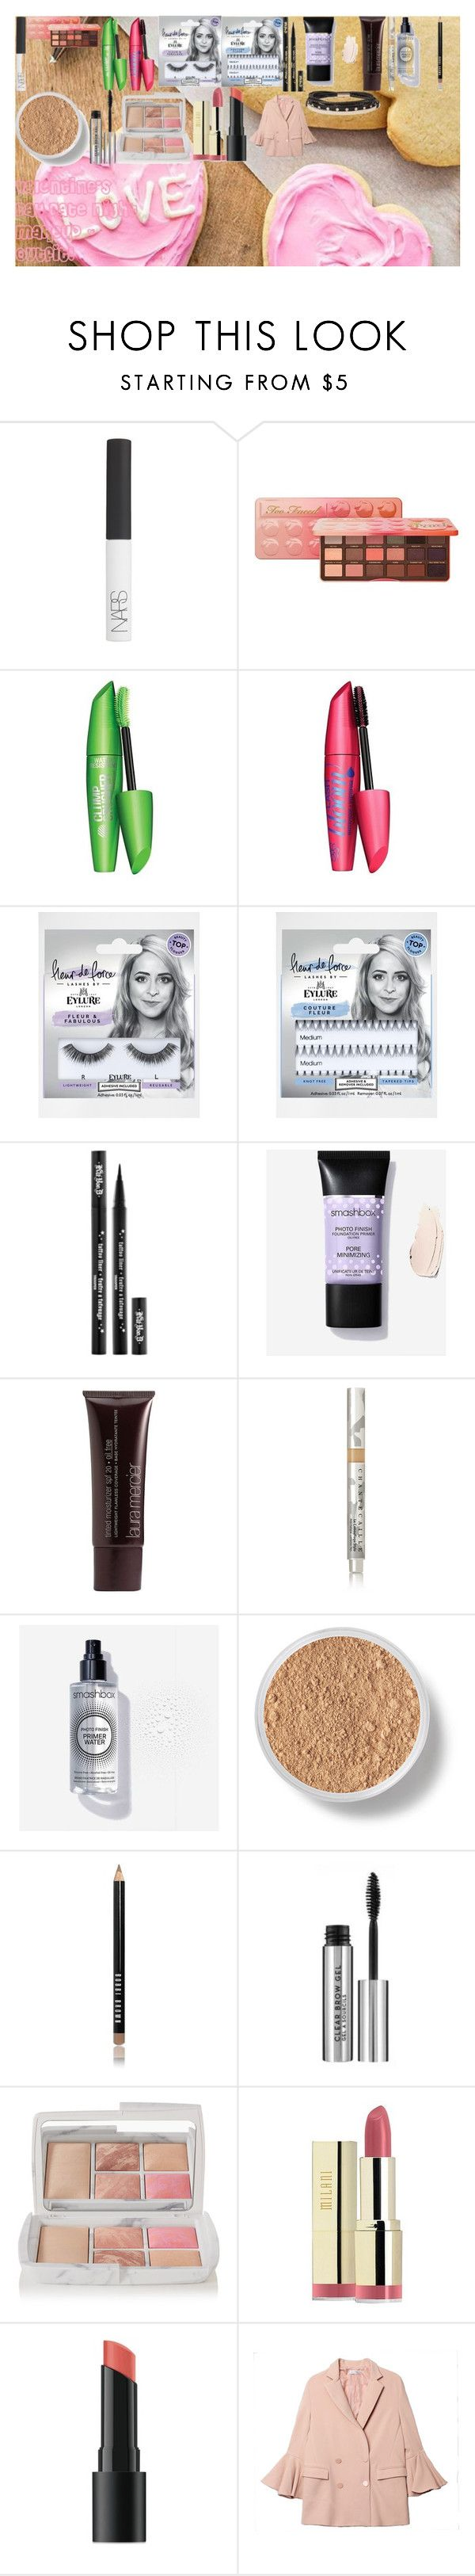 """""""Valentine's Day Date Night Makeup + Outfit!"""" by oroartye-1 on Polyvore featuring beauty, NARS Cosmetics, Too Faced Cosmetics, eylure, Kat Von D, Laura Mercier, Chantecaille, Bare Escentuals, Bobbi Brown Cosmetics and Hourglass Cosmetics"""